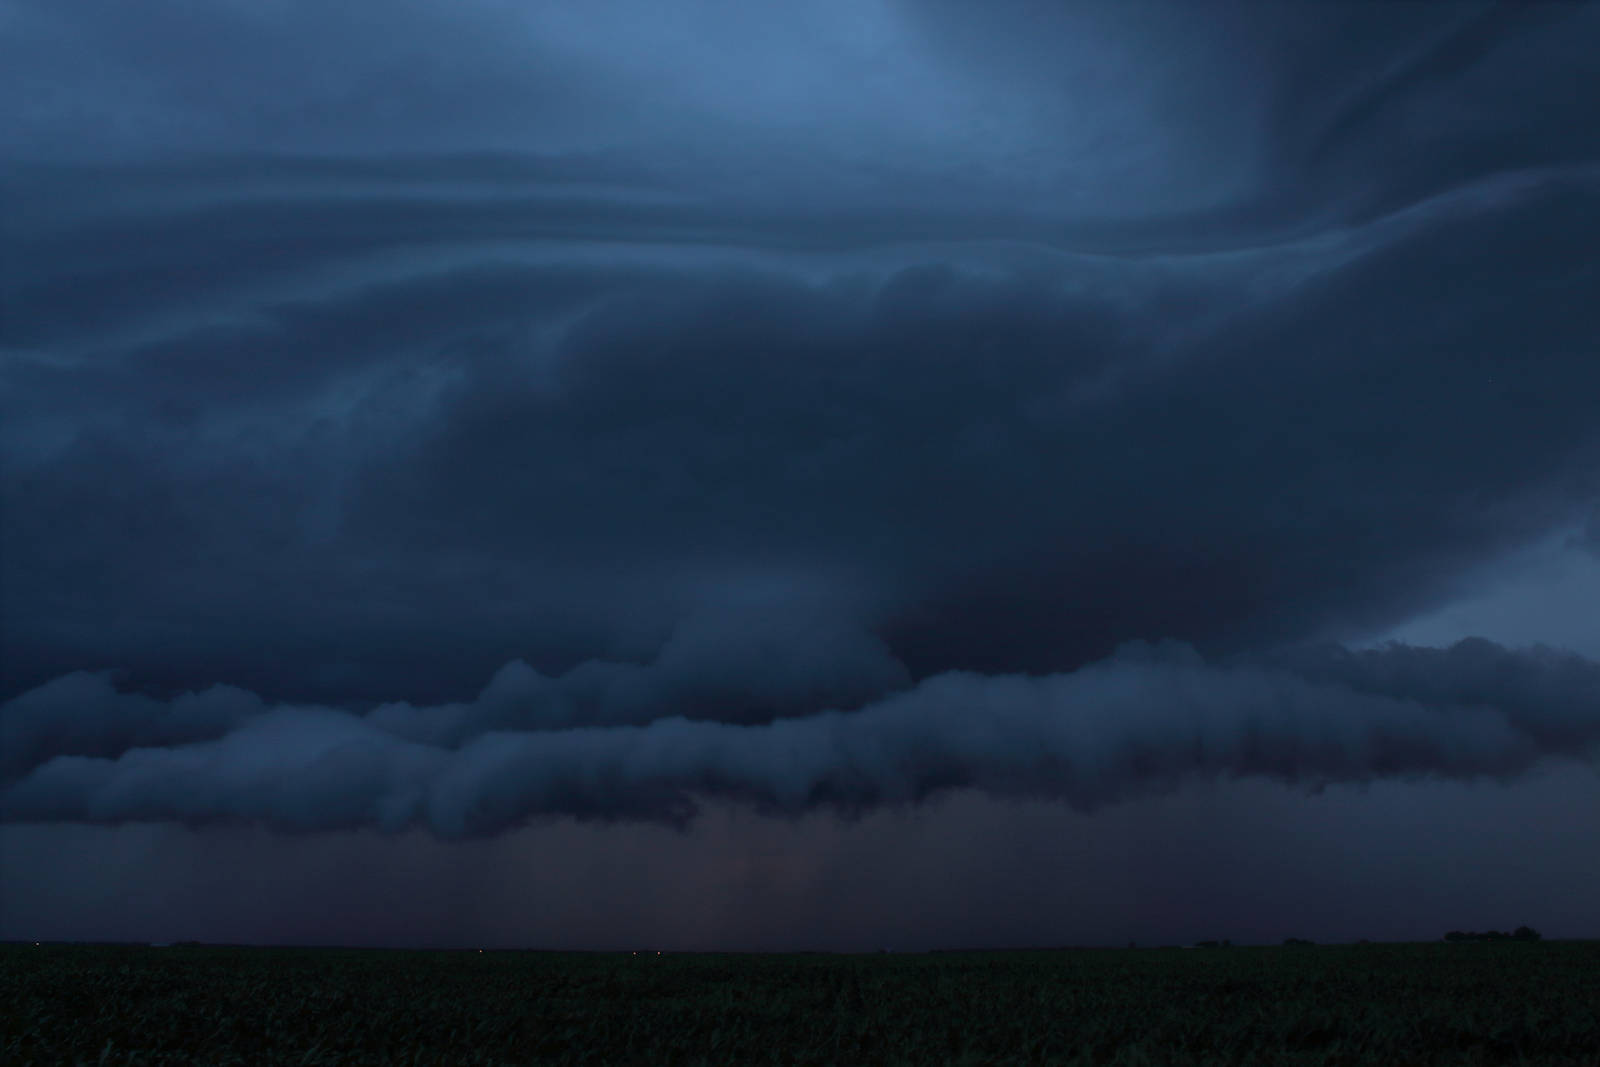 2018-06-18, Blencoe, IA - Shelf Portion by WxKnowltey